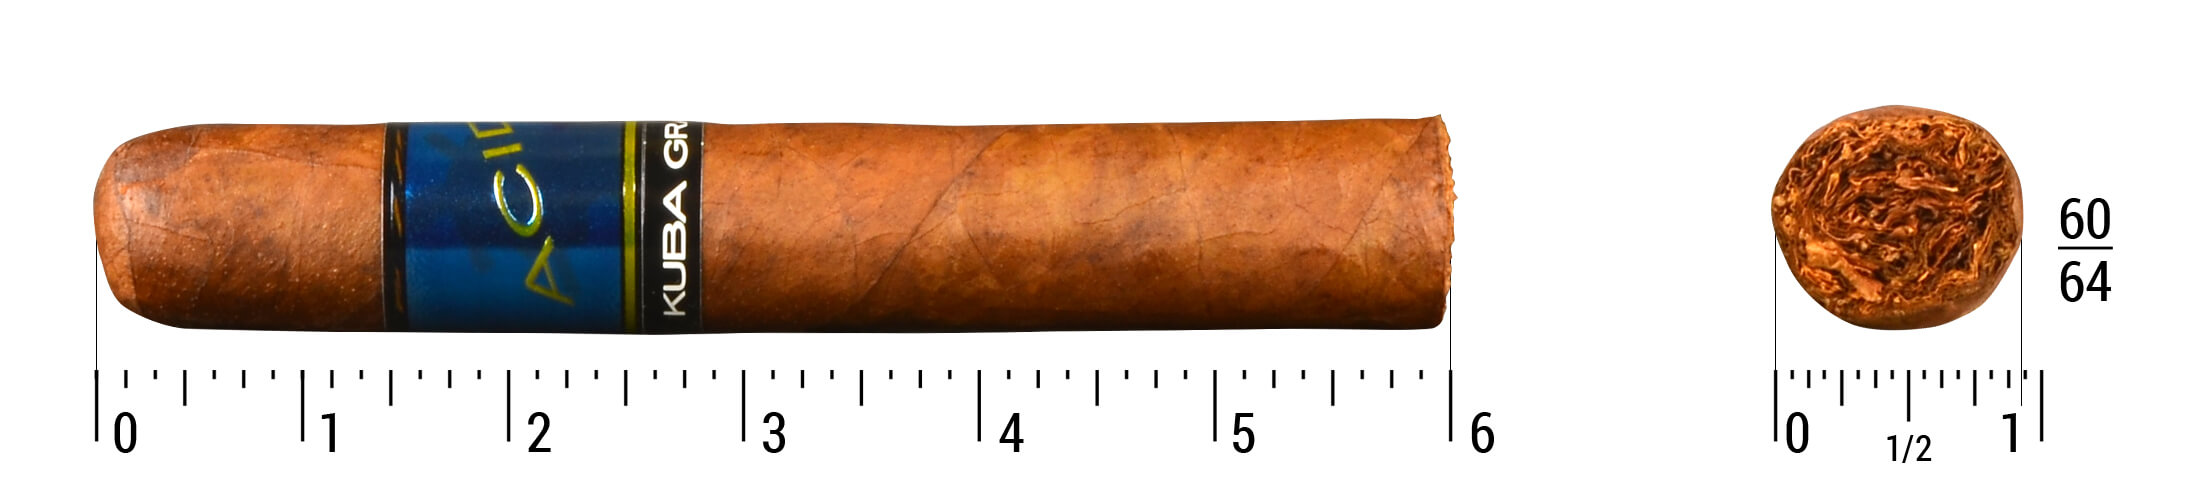 Acid Kuba Grande Single Cigar Size